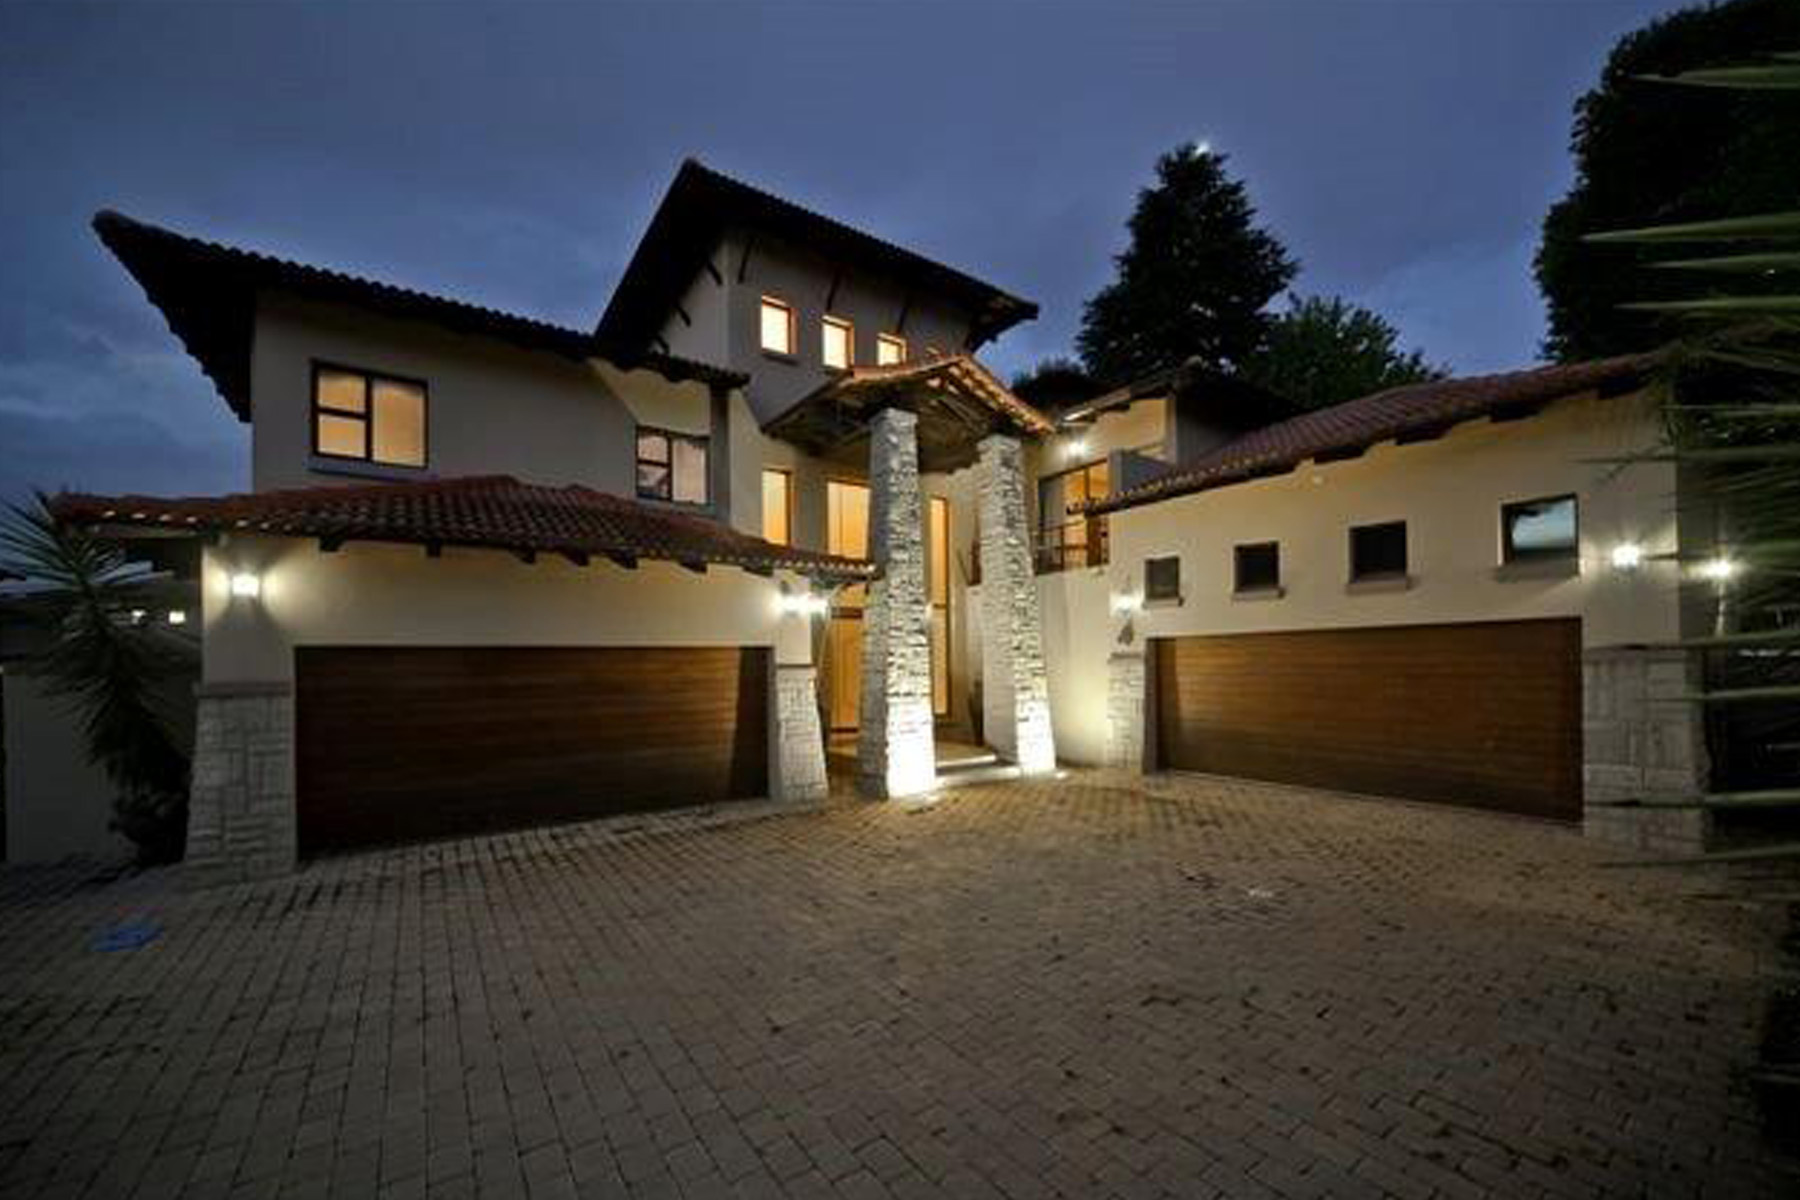 Single Family Home for Sale at Bedfordview Johannesburg, Gauteng, 2007 South Africa